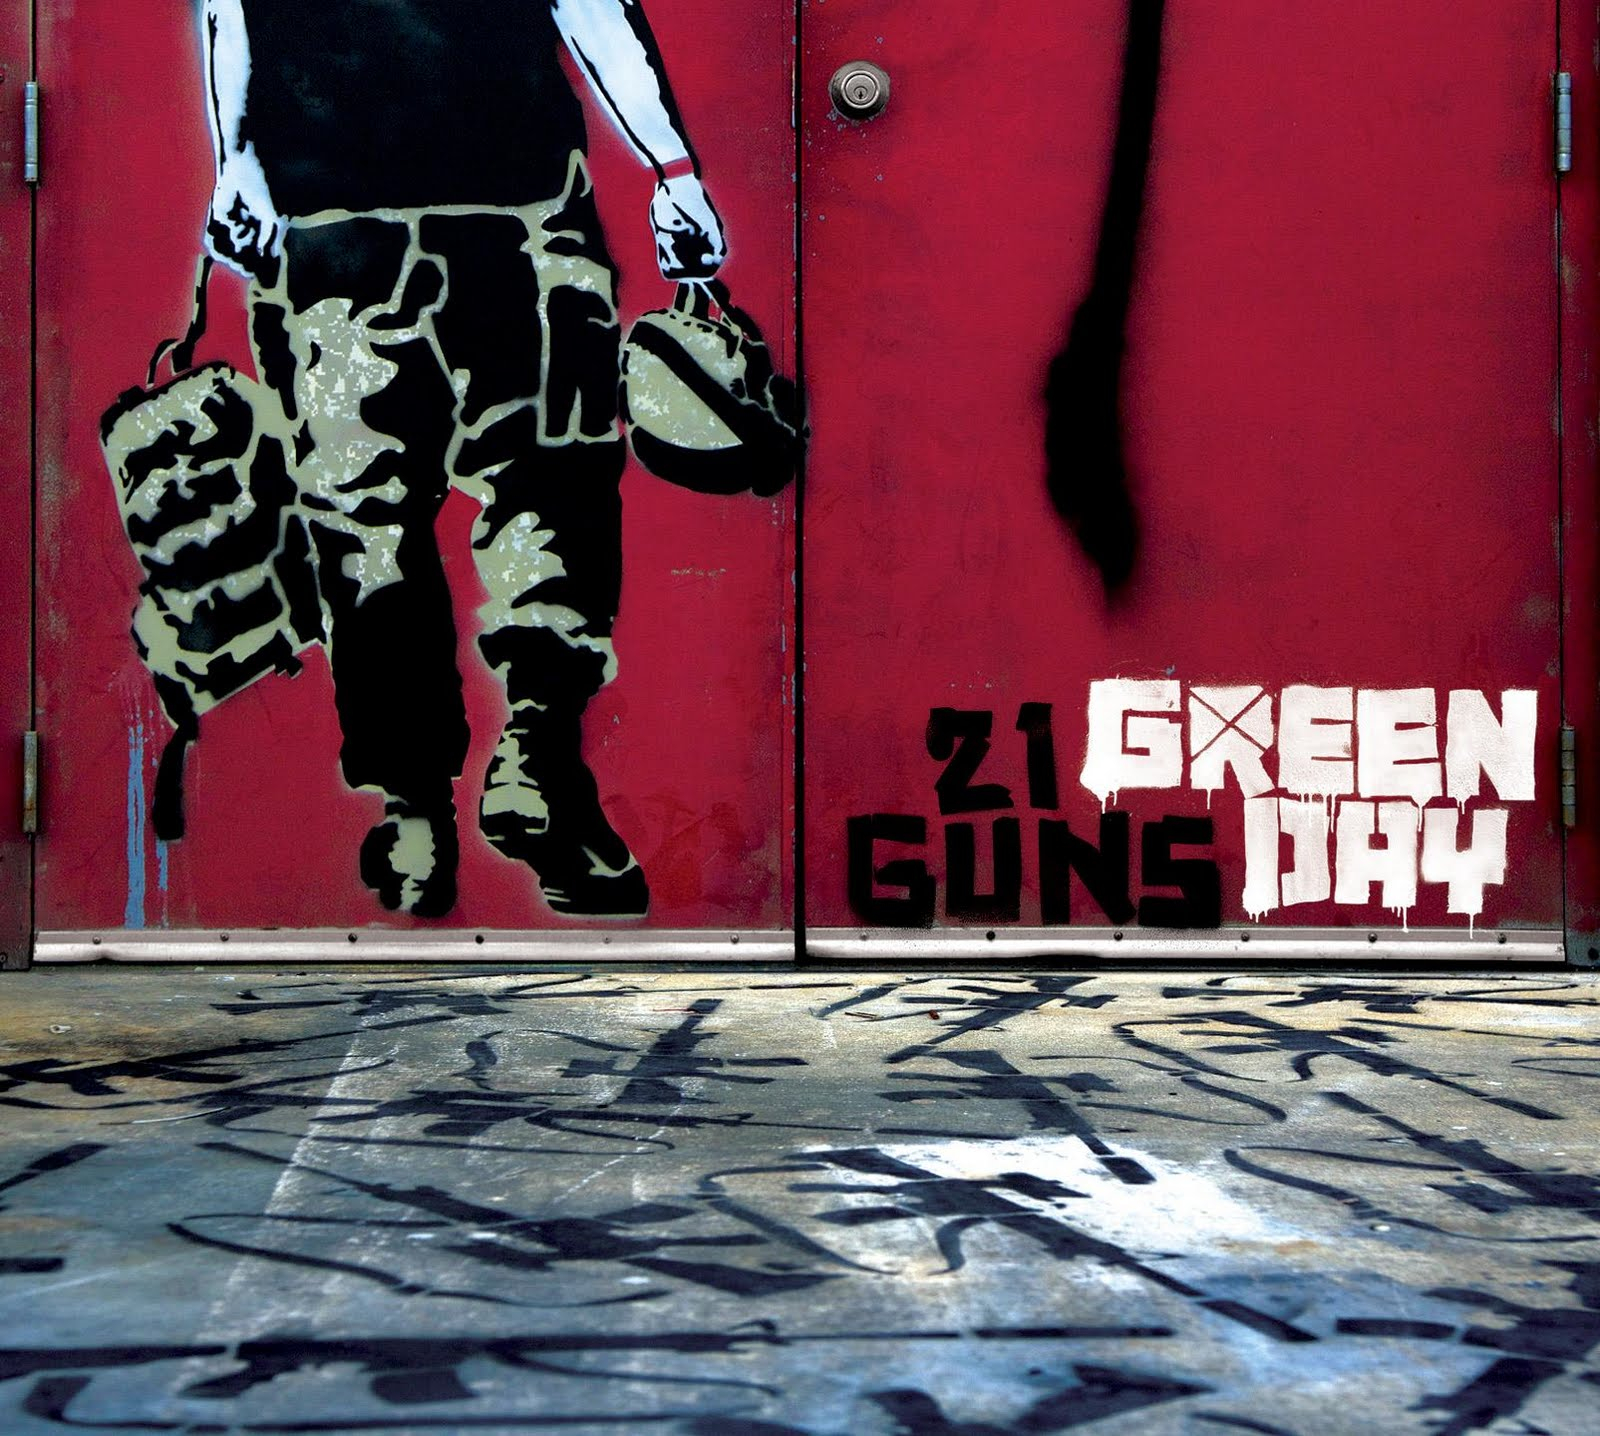 21 Guns Chords Greenday 21 Guns Guitar Chords Tabs Lyrics Song Facts Meaning